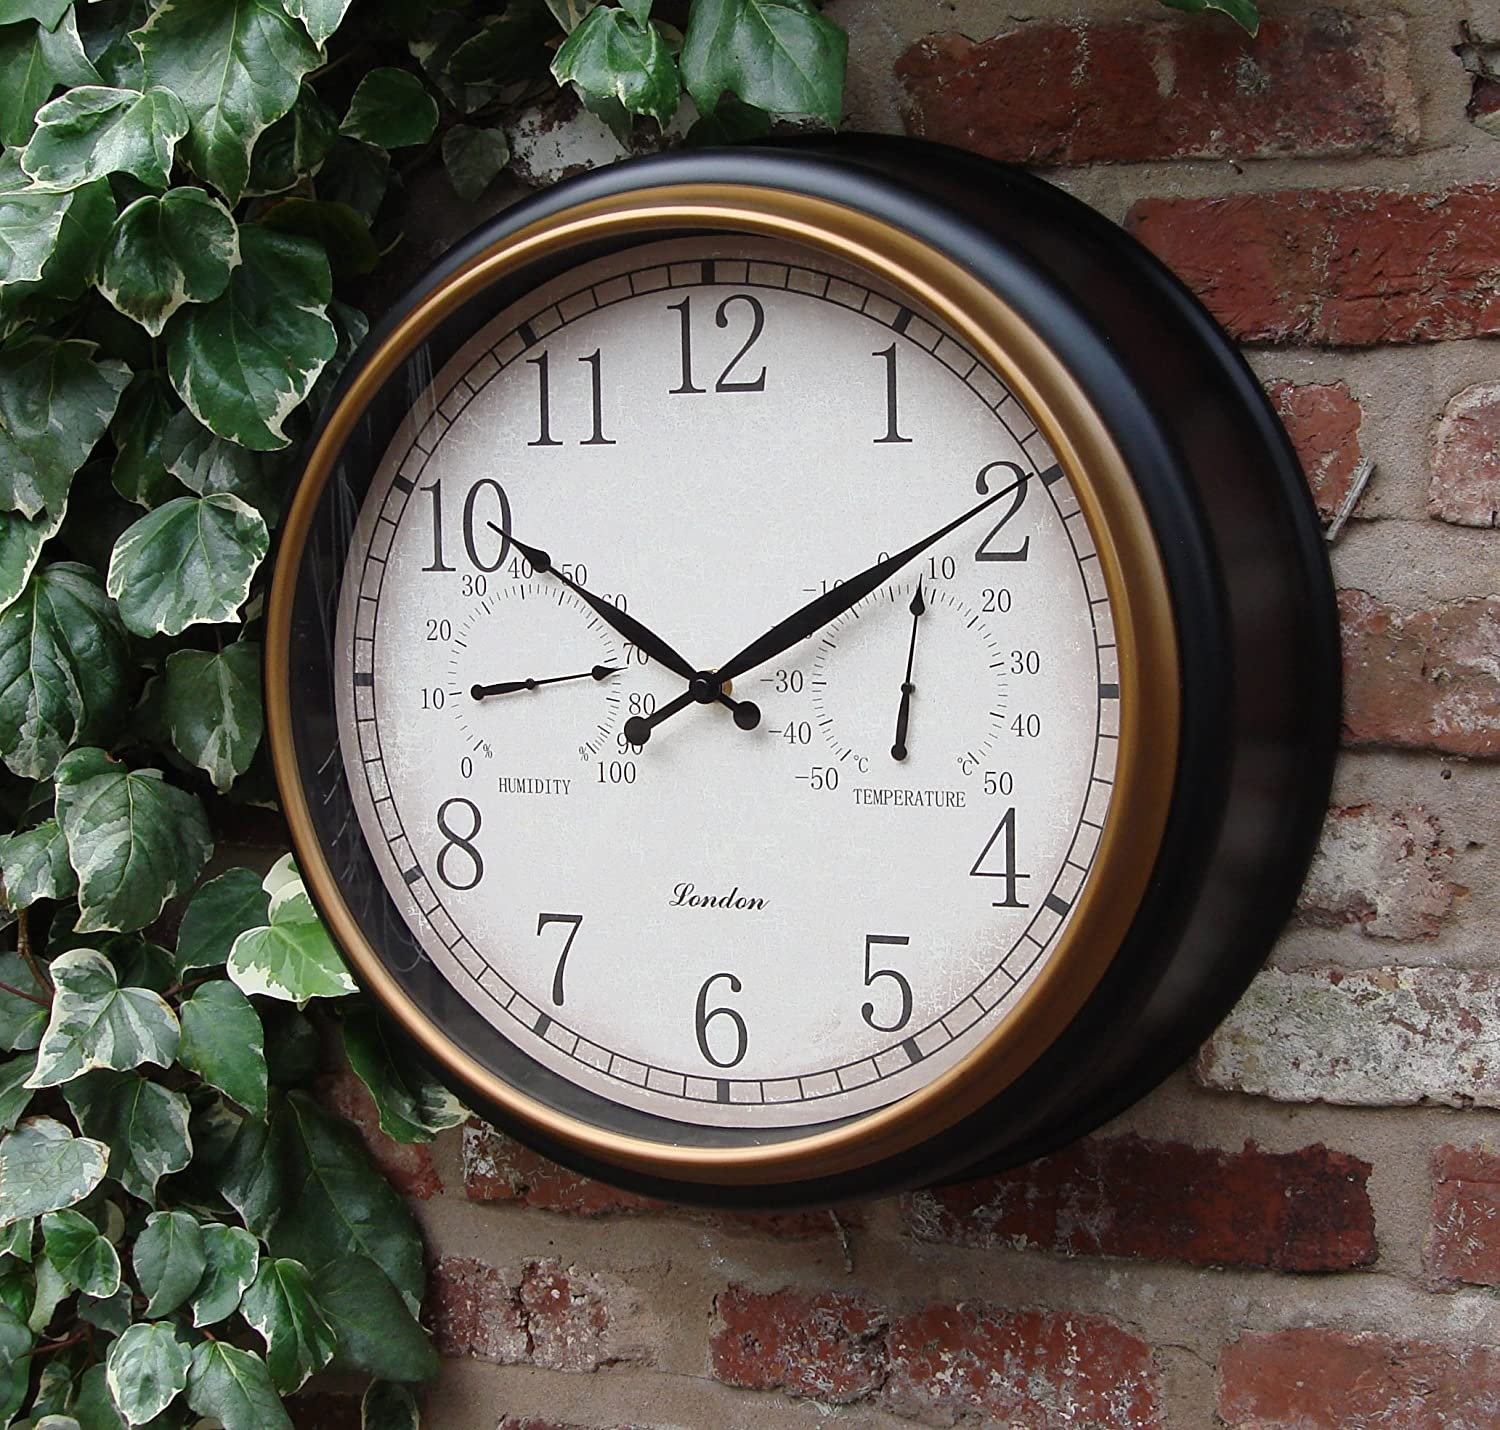 Outdoor Garden Wall Clock Thermometer & Humidity 45cm Black Frame colour Home and Garden Products Ltd